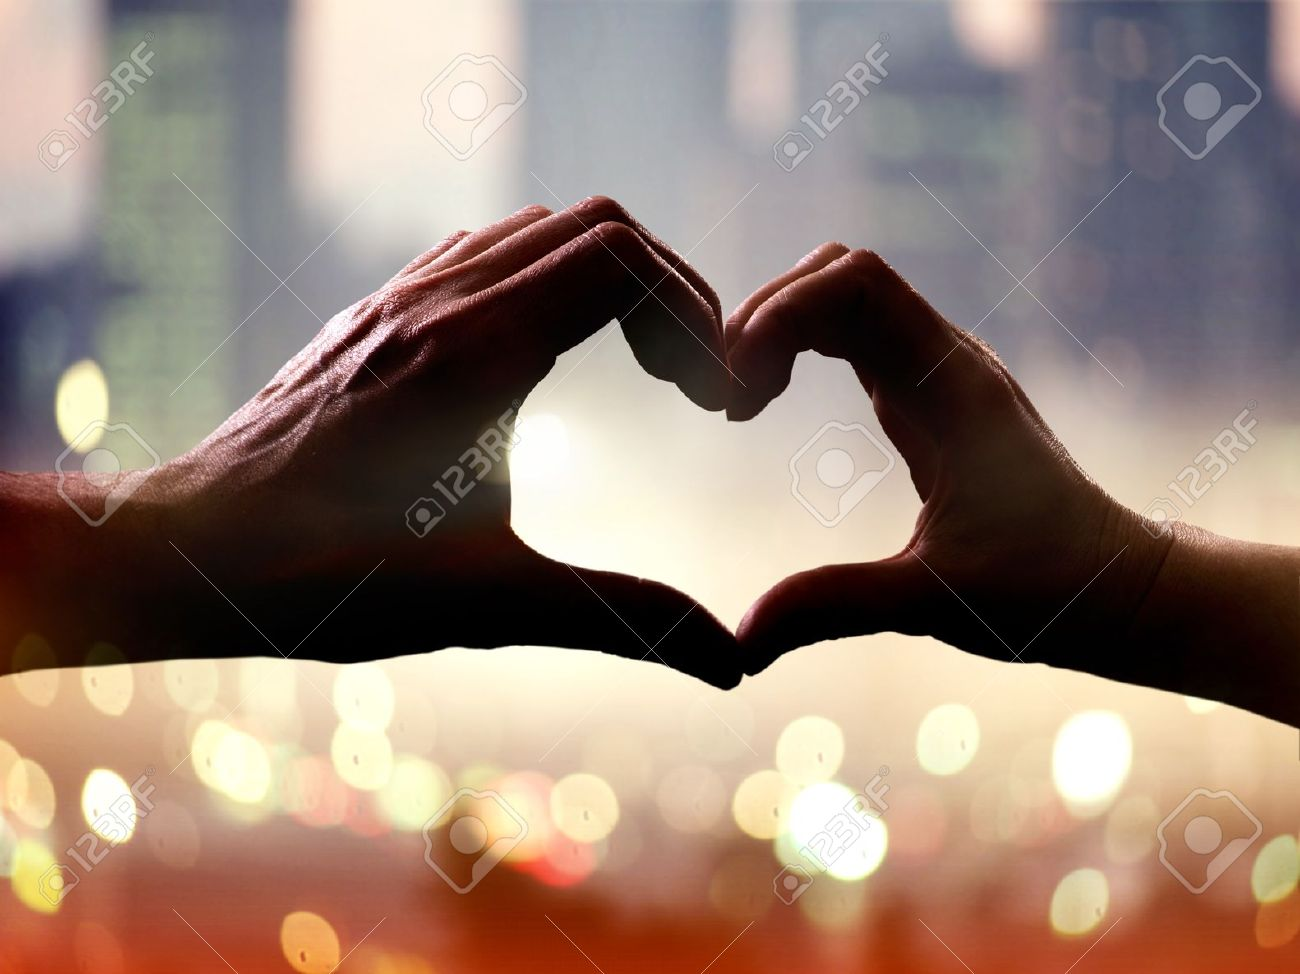 Silhouette of hands in form of heart when sweethearts have touched Stock Photo - 11885128